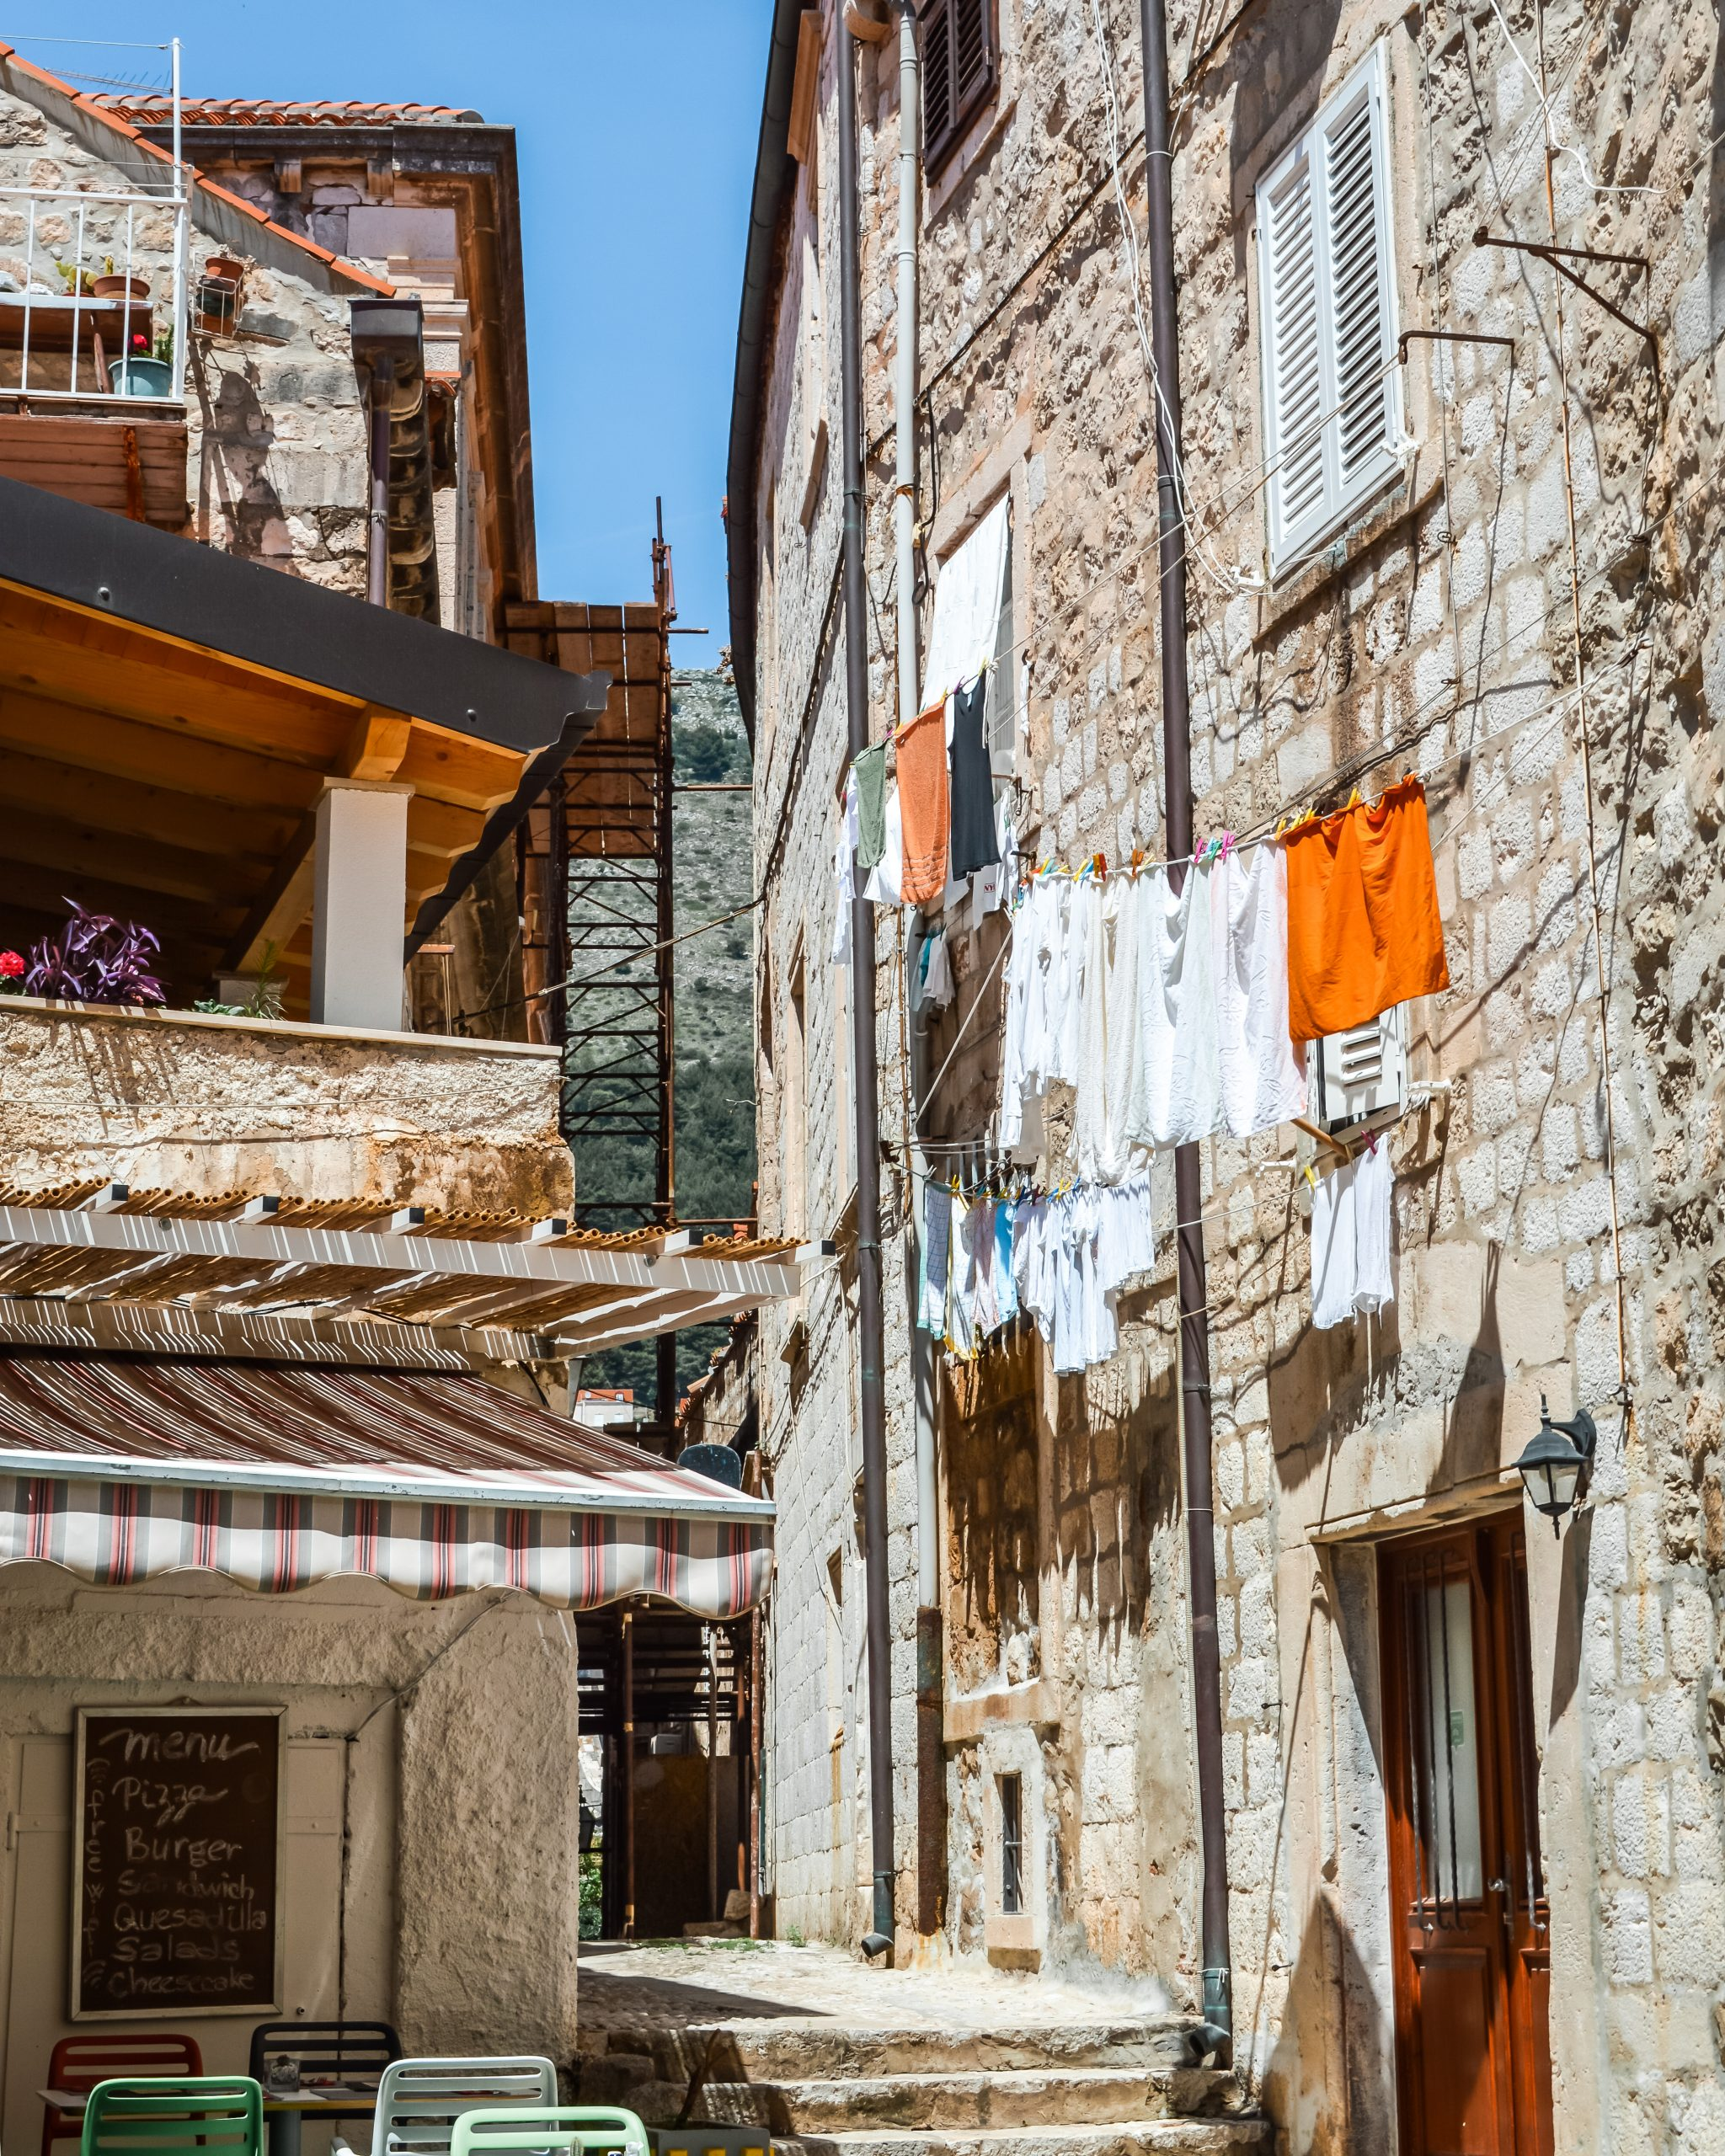 hanging laundry and cobblestone streets in dubrovnik, croatia